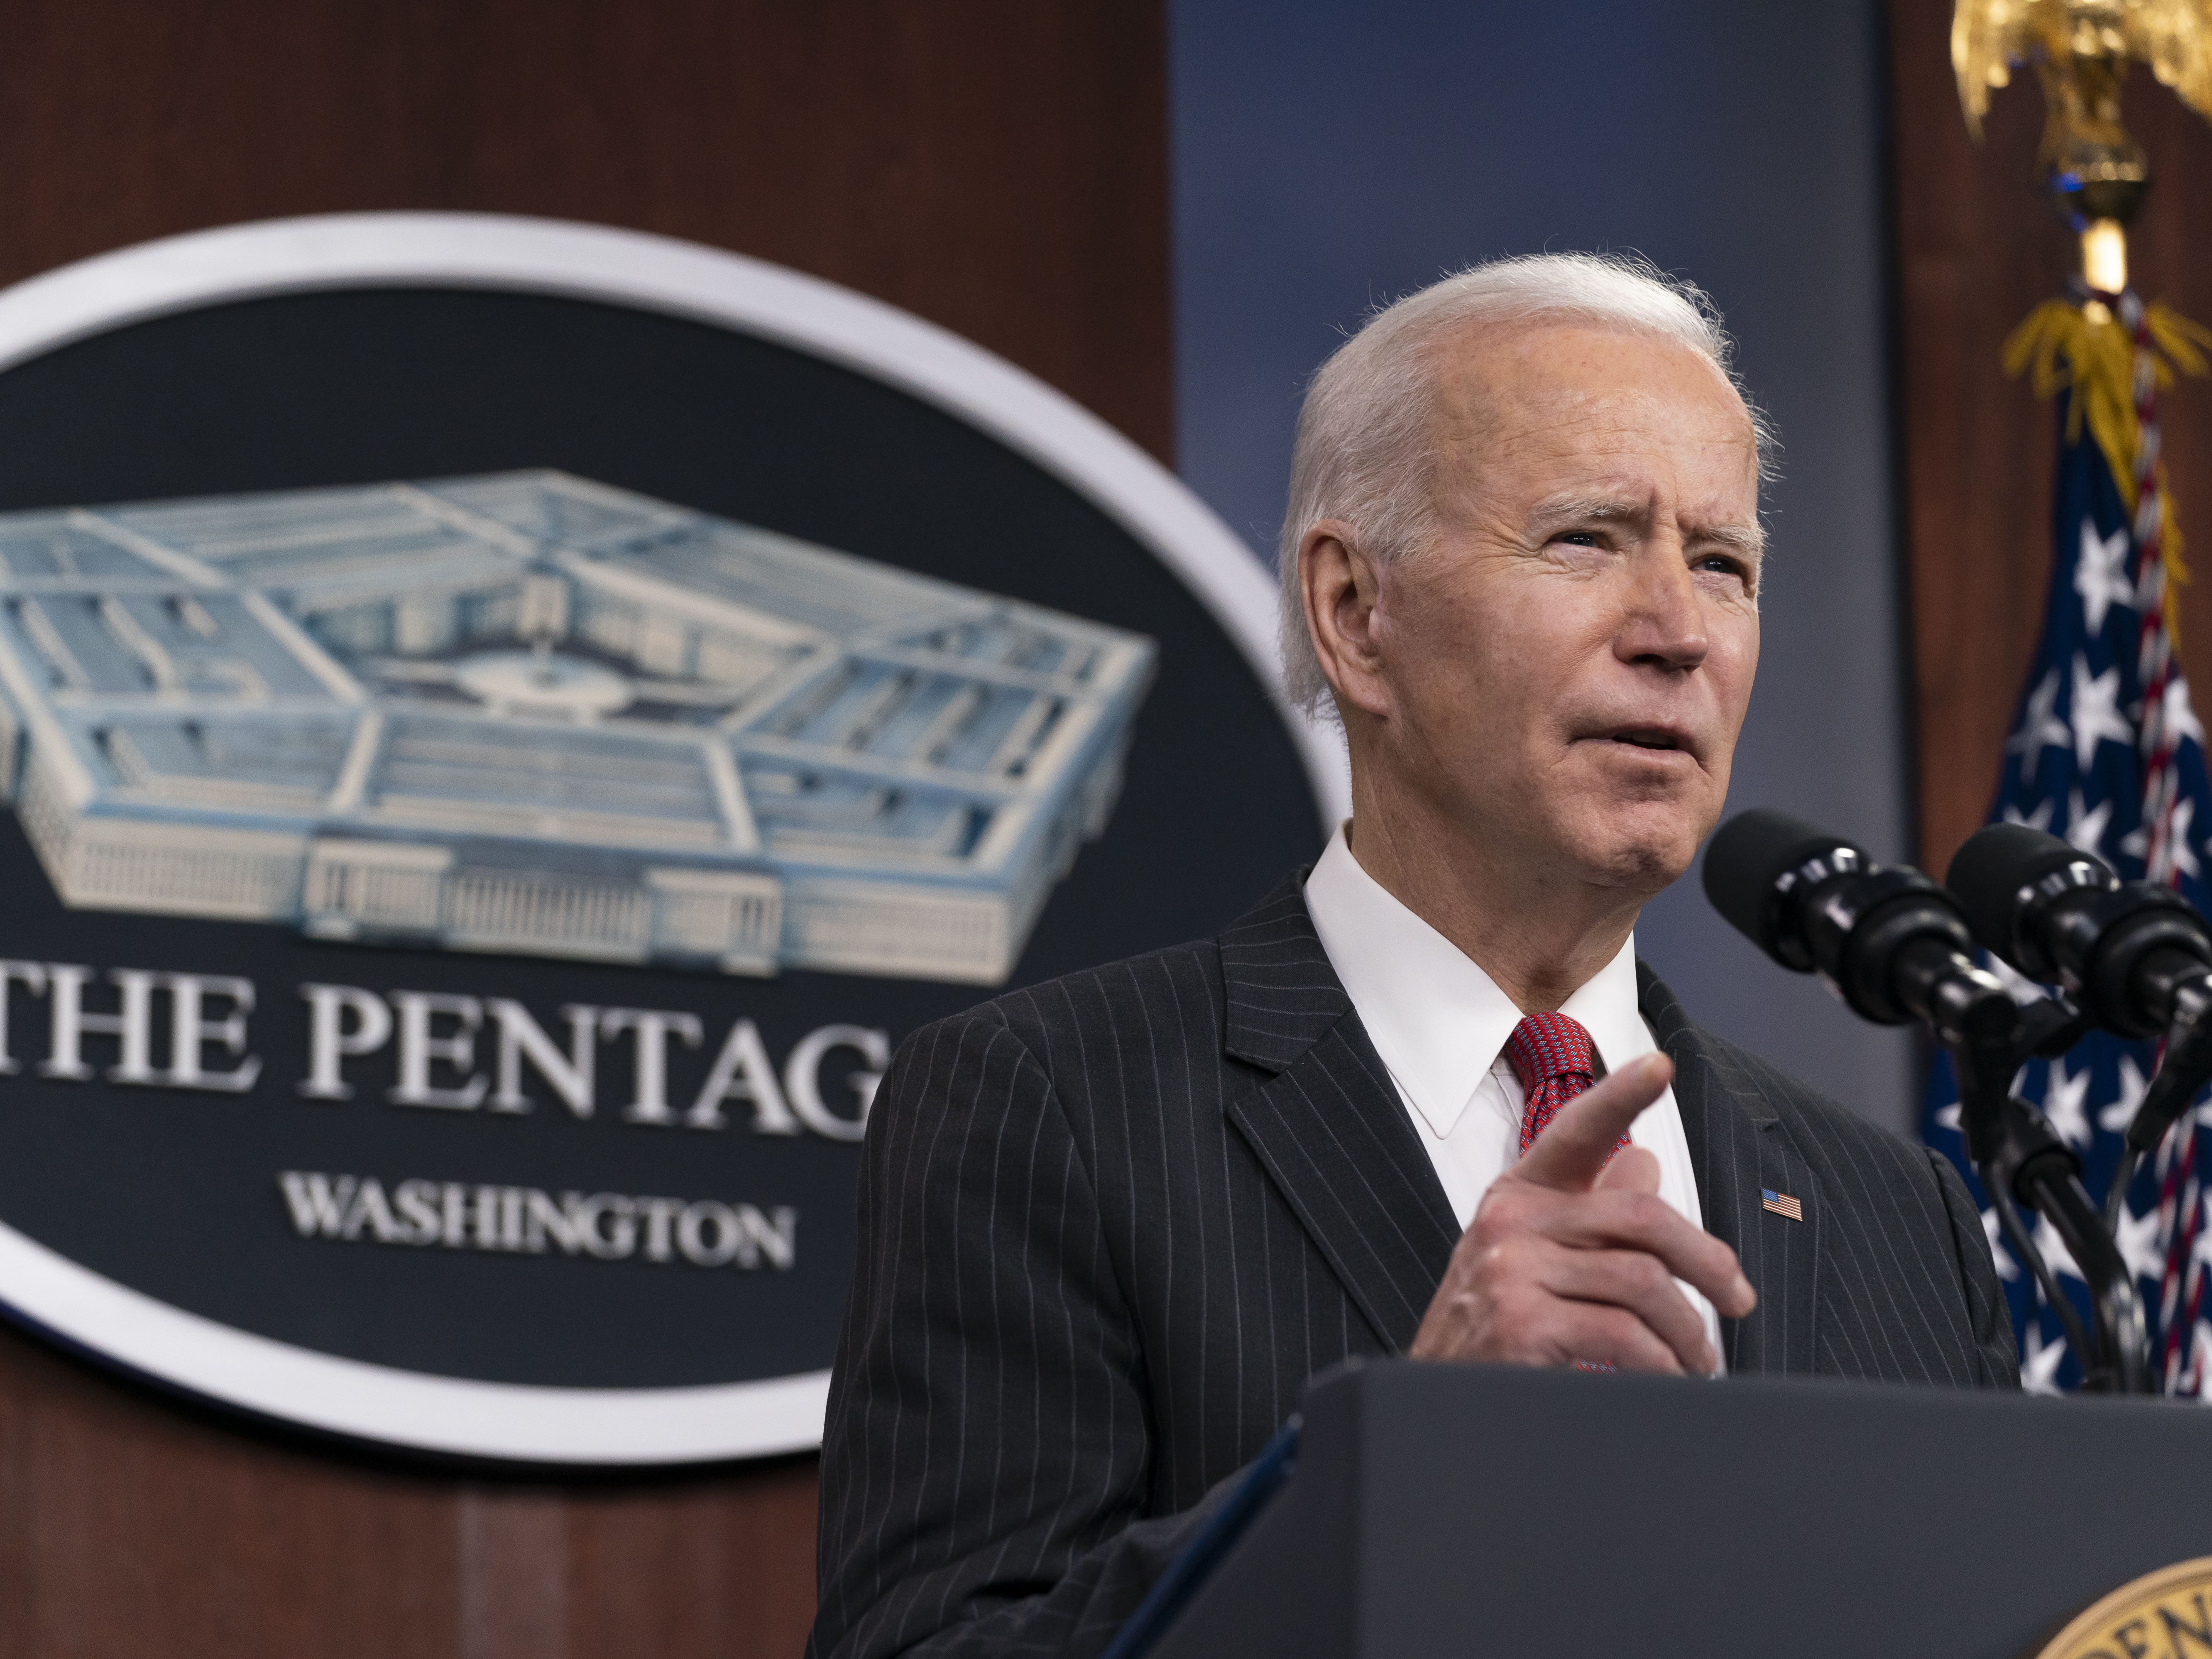 Biden To Announce He Will 'End America's Longest War' In Afghanistan